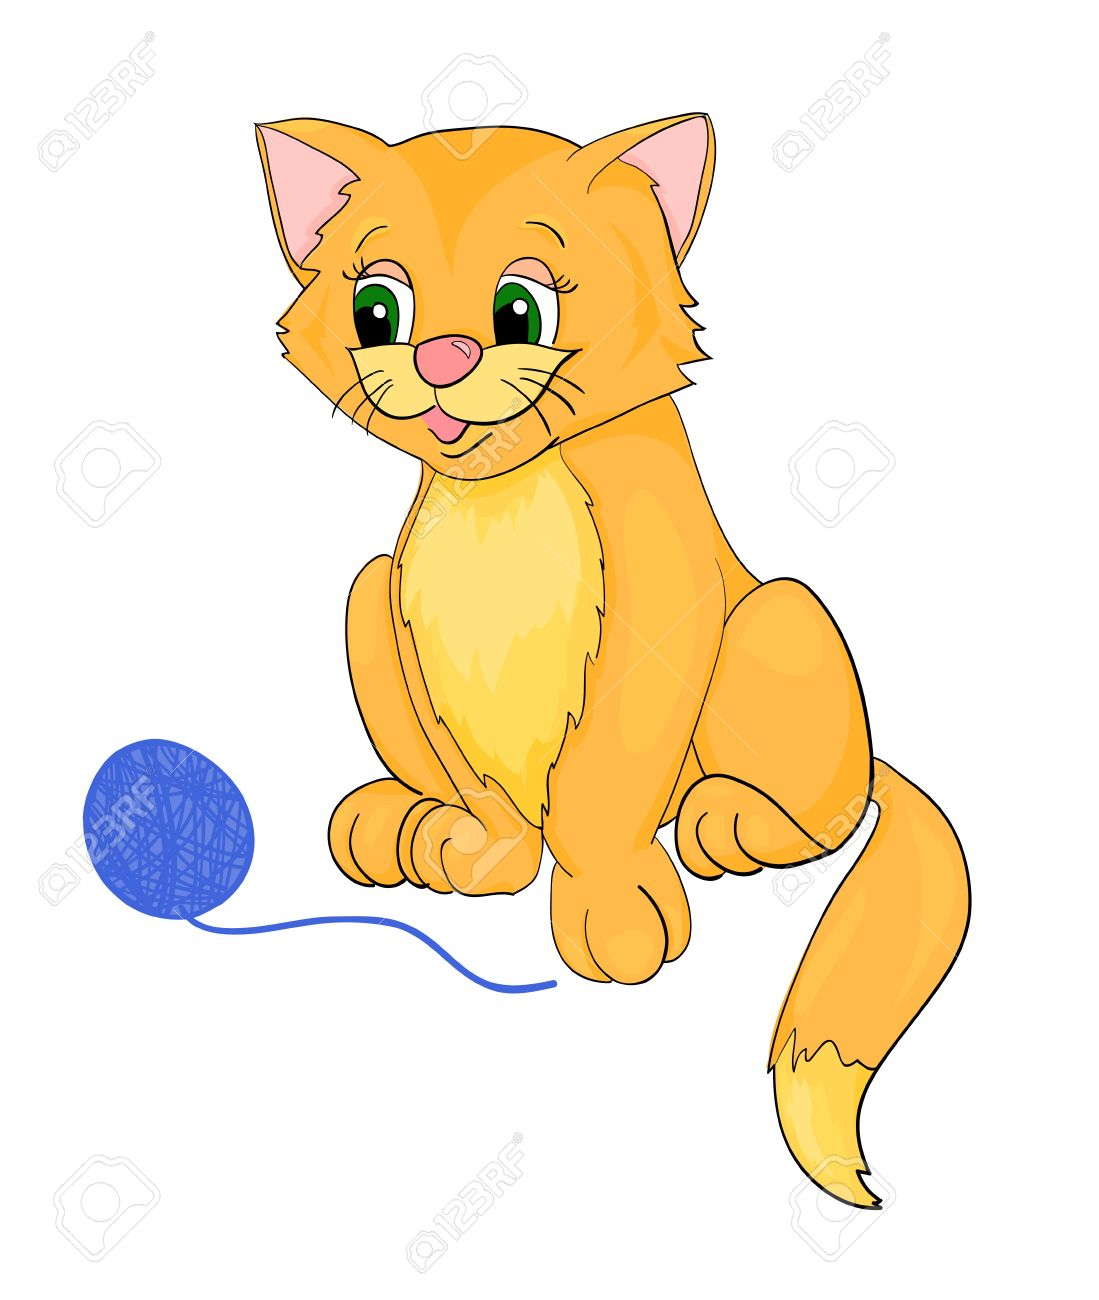 Cat Cartoon Stock s & Royalty Free Cat Cartoon